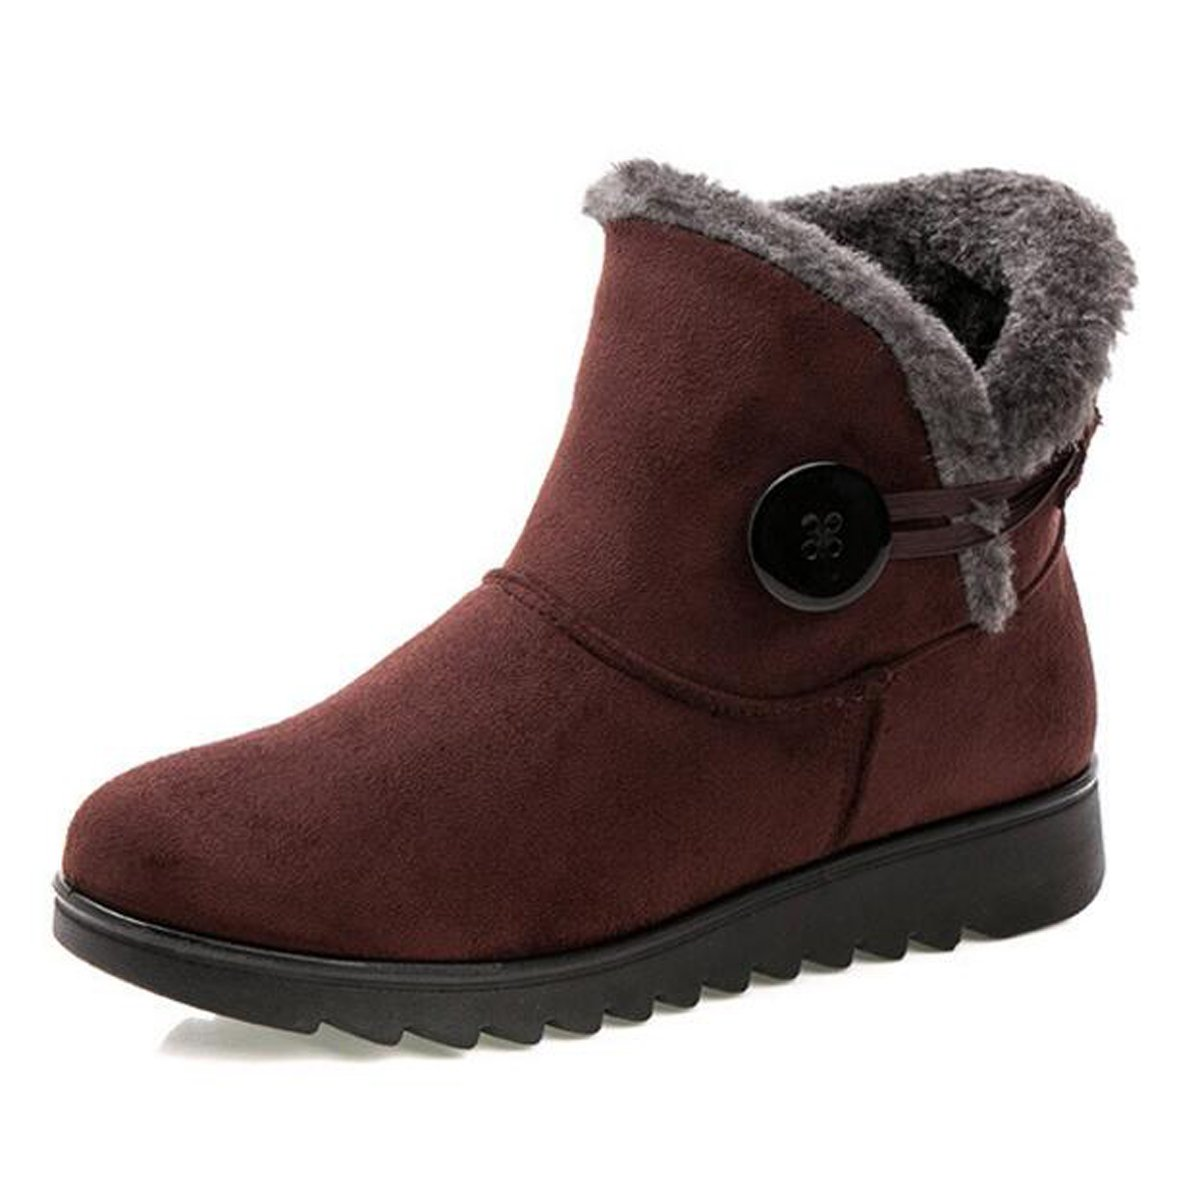 21ab8d1623244 Slduv7 Fur Lined Womens Snow Boots Flock Winter Button Pull On Ankle  Booties Shoes